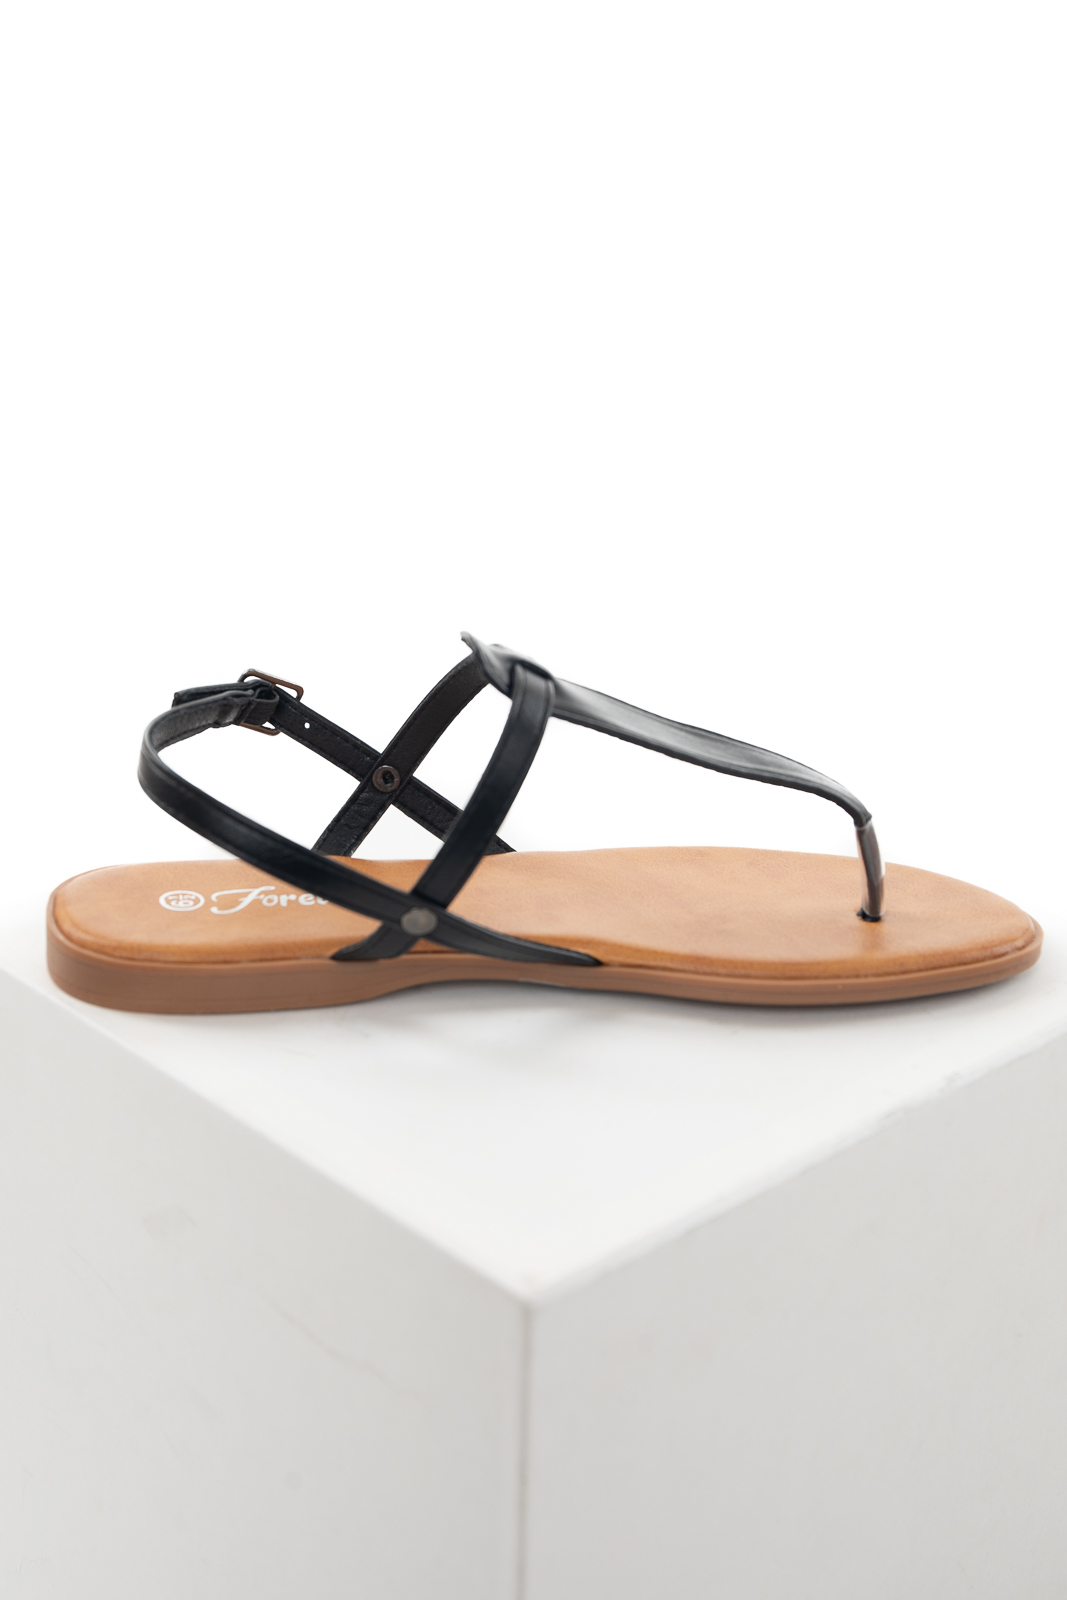 Black Flat Strappy Thong Sandals with Buckle Closure